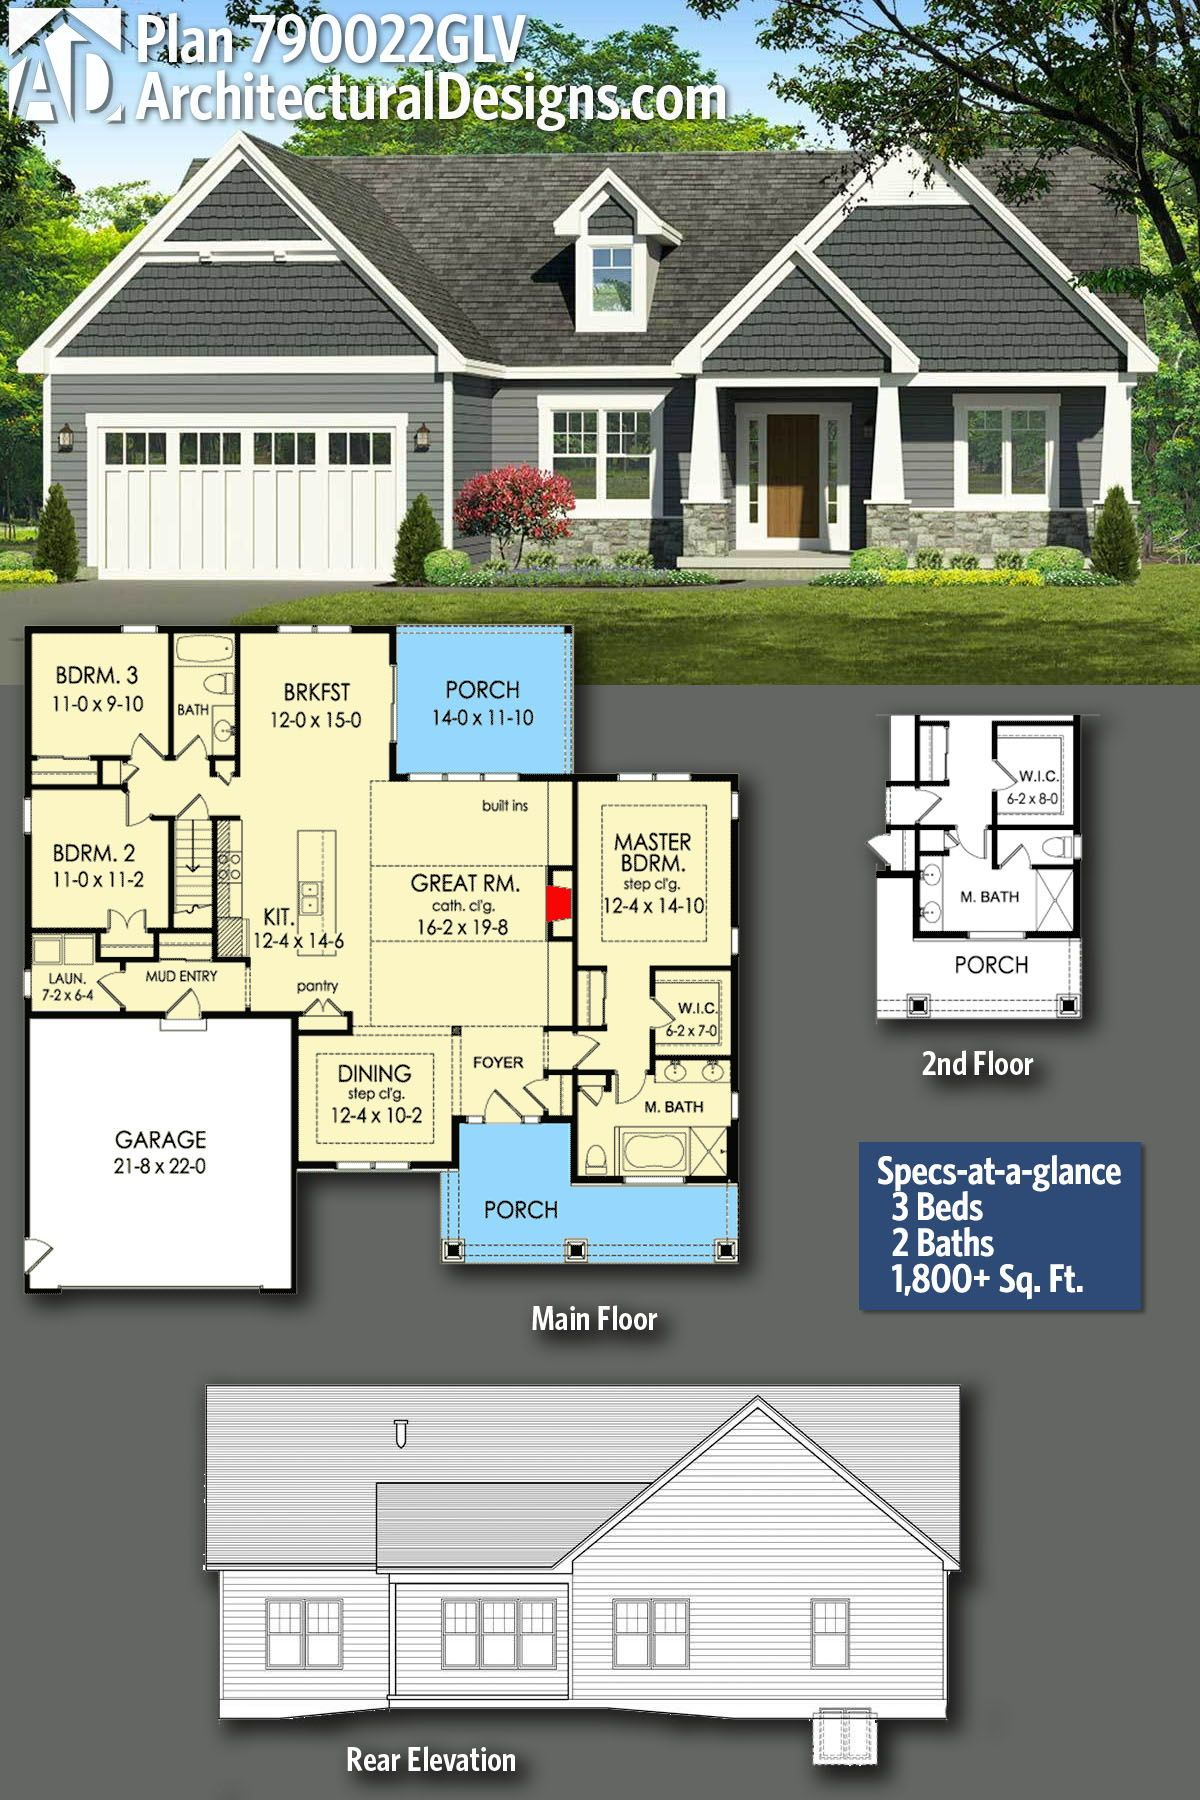 Plan 790022glv Exclusive 3 Bed Craftsman Ranch Home Plan With Master Bath Option Ranch House Plans Craftsman House Plans Craftsman Ranch